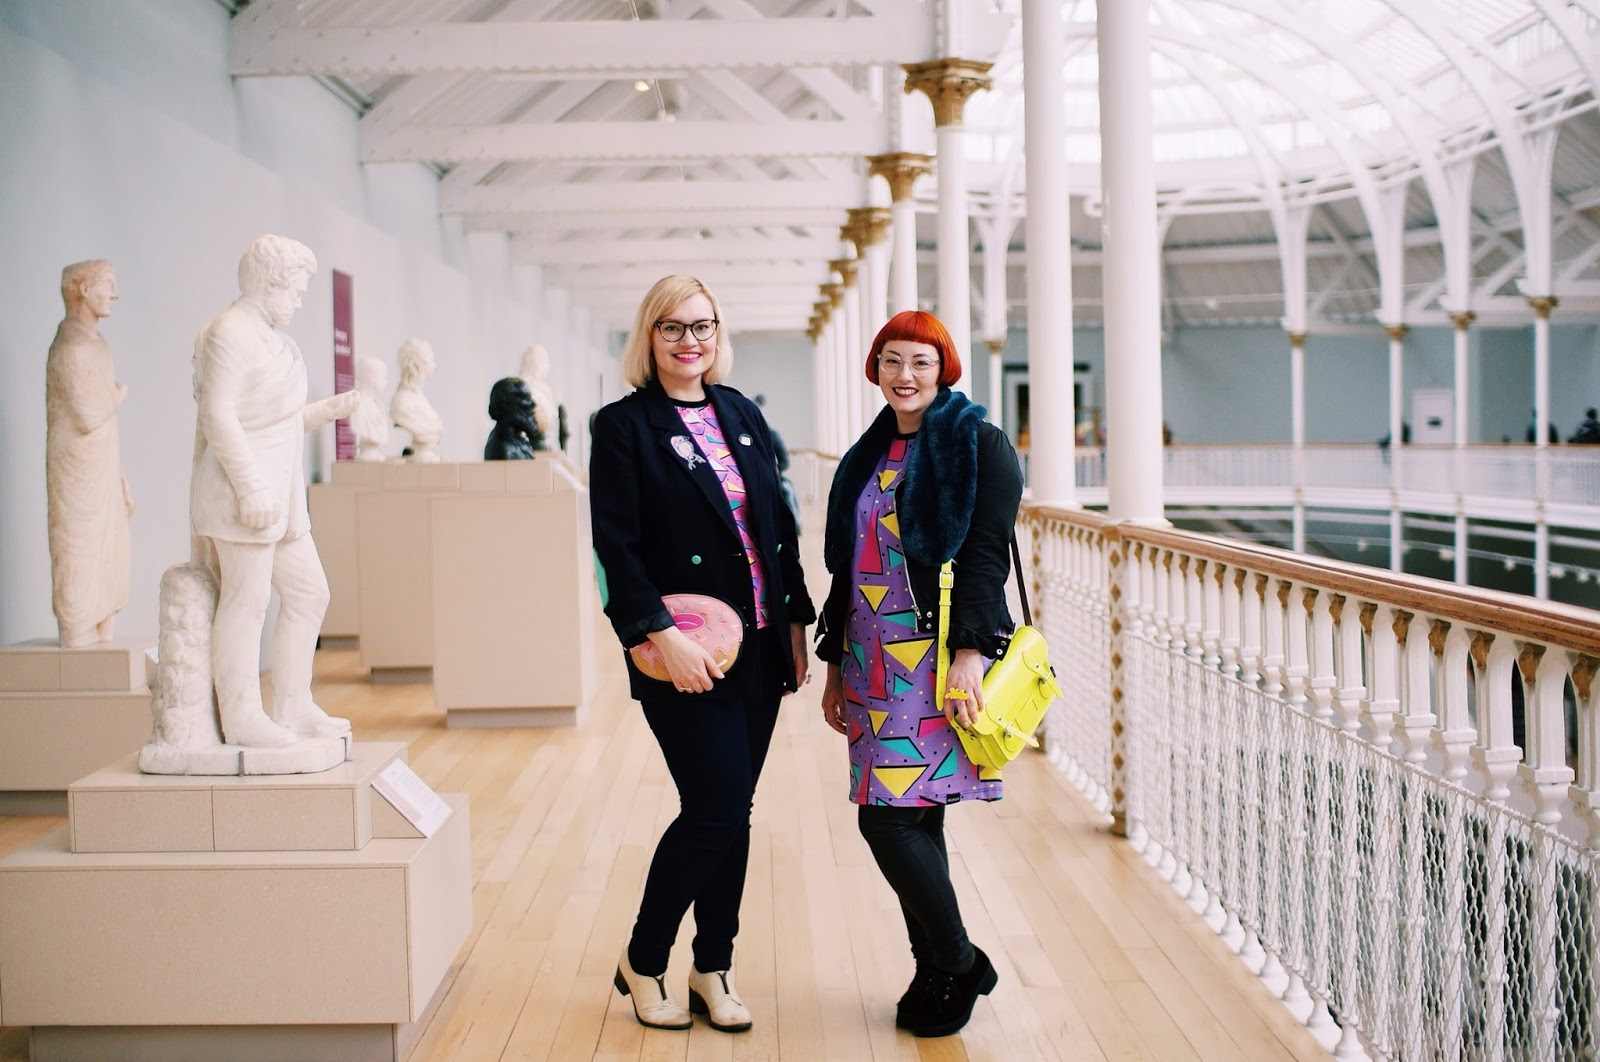 Helen and Kimberley, Wardrobe Conversations, Boya Shen, moveit video project, YouTube, National Museum of Scotland, photoshoot, Scottish bloggers,